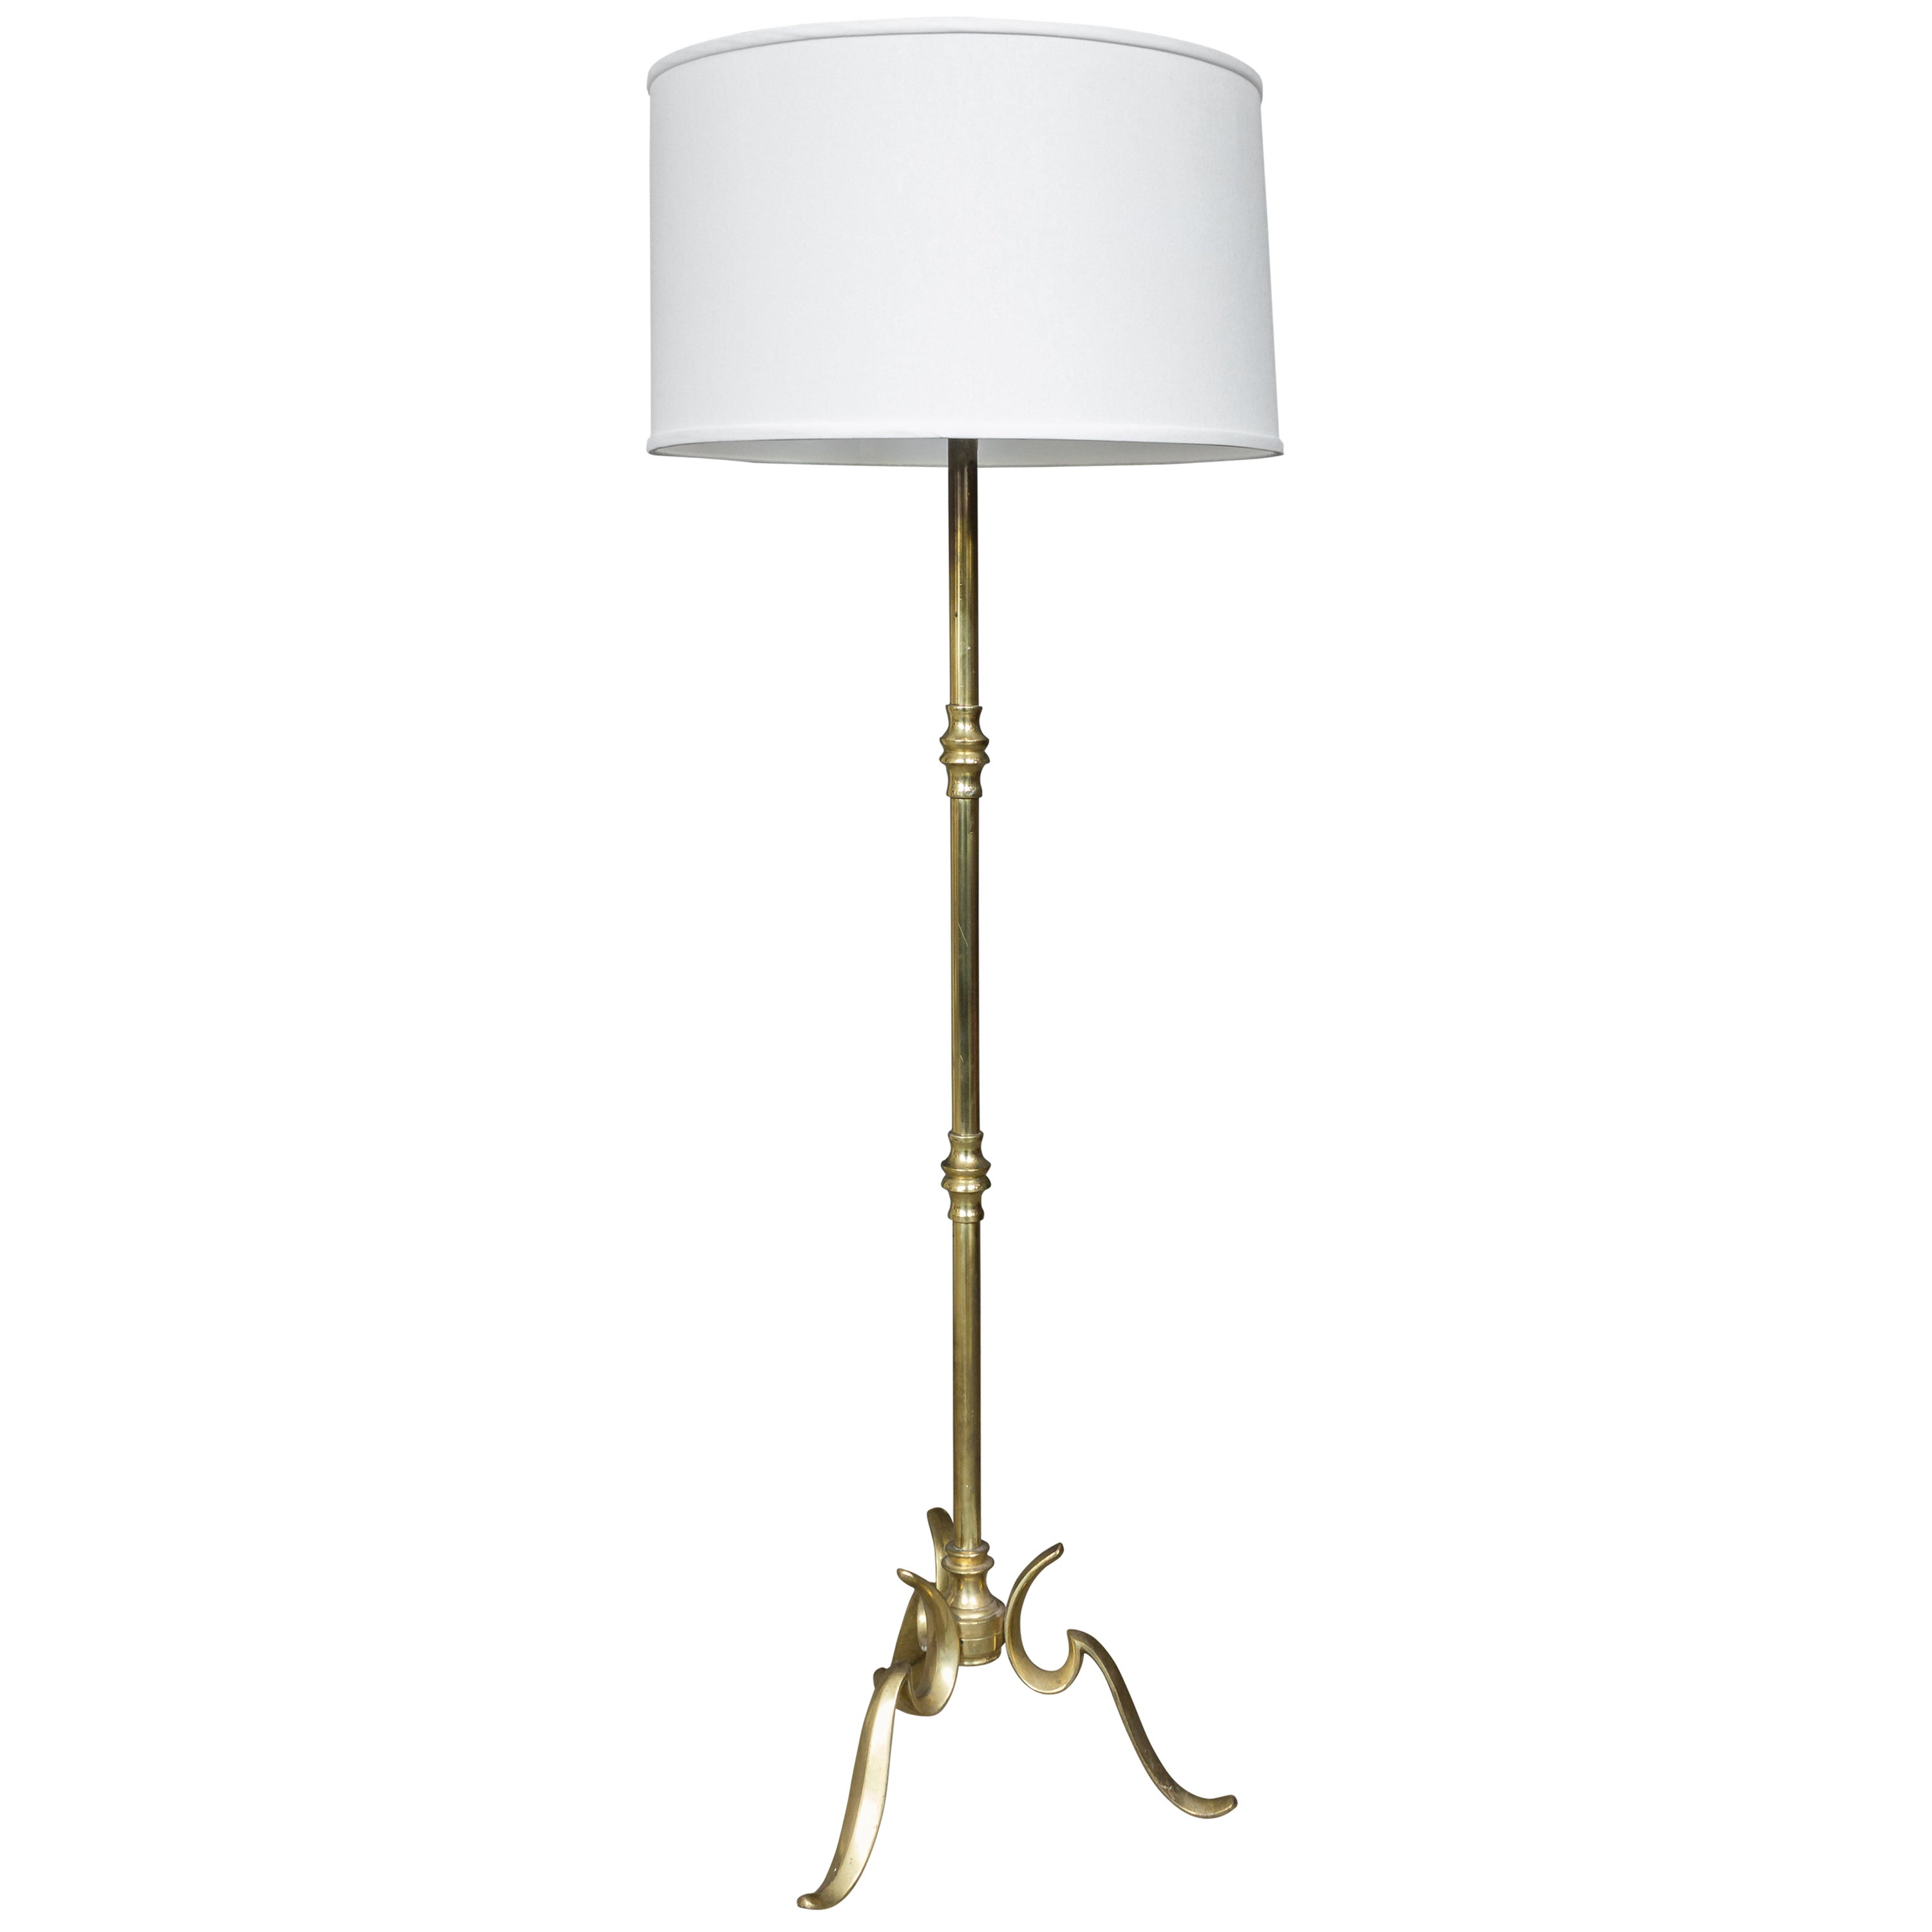 Brass Floor Lamp with a Cast Tripod Base